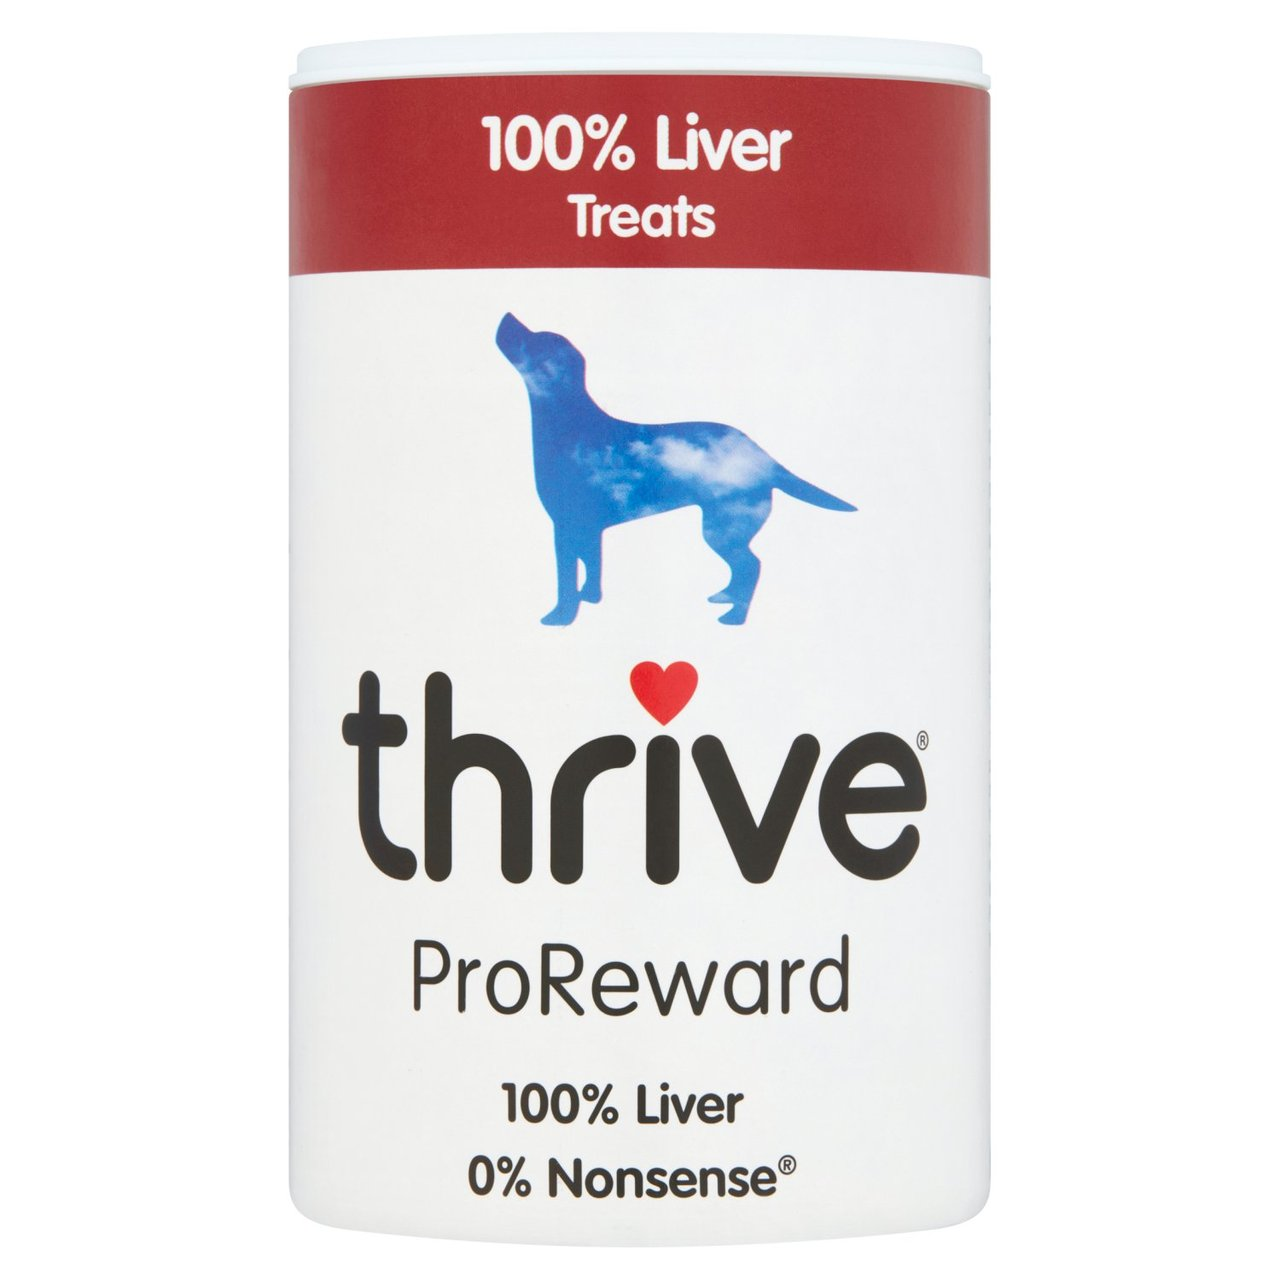 An image of Thrive ProReward 100% Liver Dog Treats